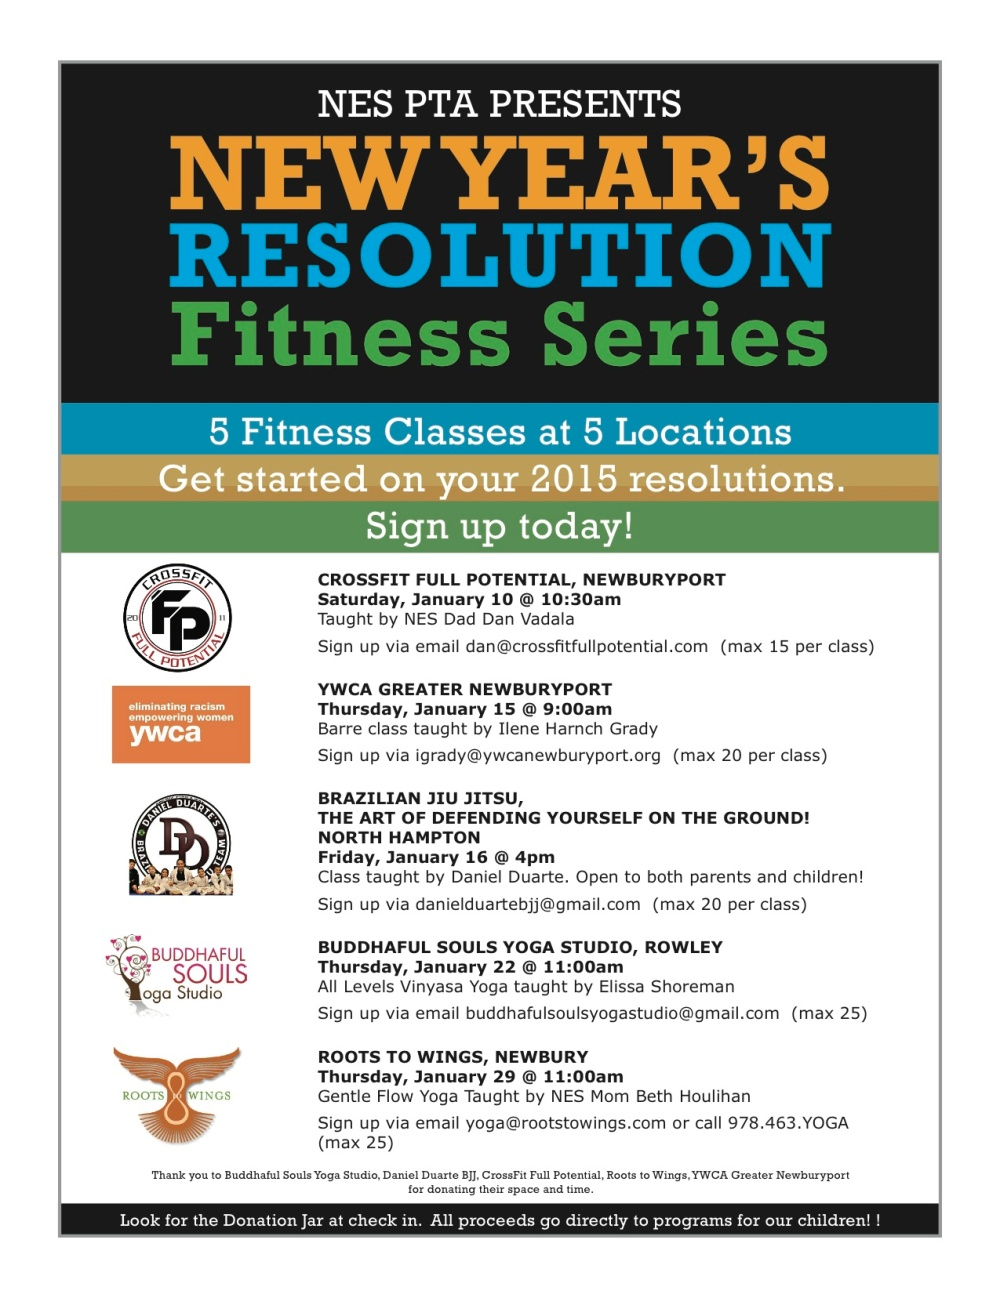 Fitnessflyer_final2015_NO TYPO